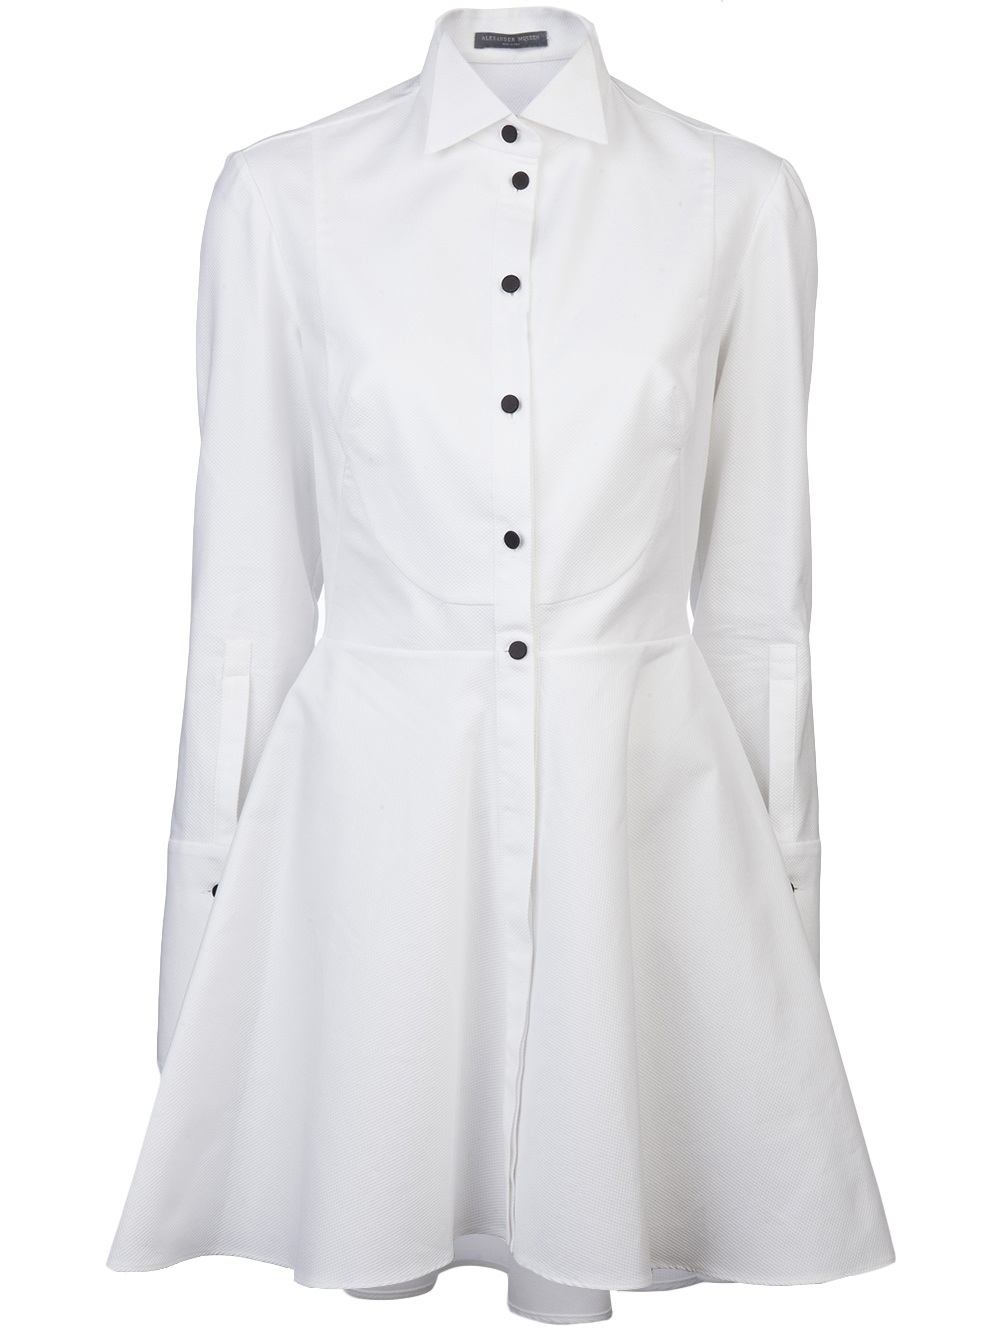 2ddb032a1582d6 Lyst - Alexander McQueen Tuxedo Shirt Dress in White